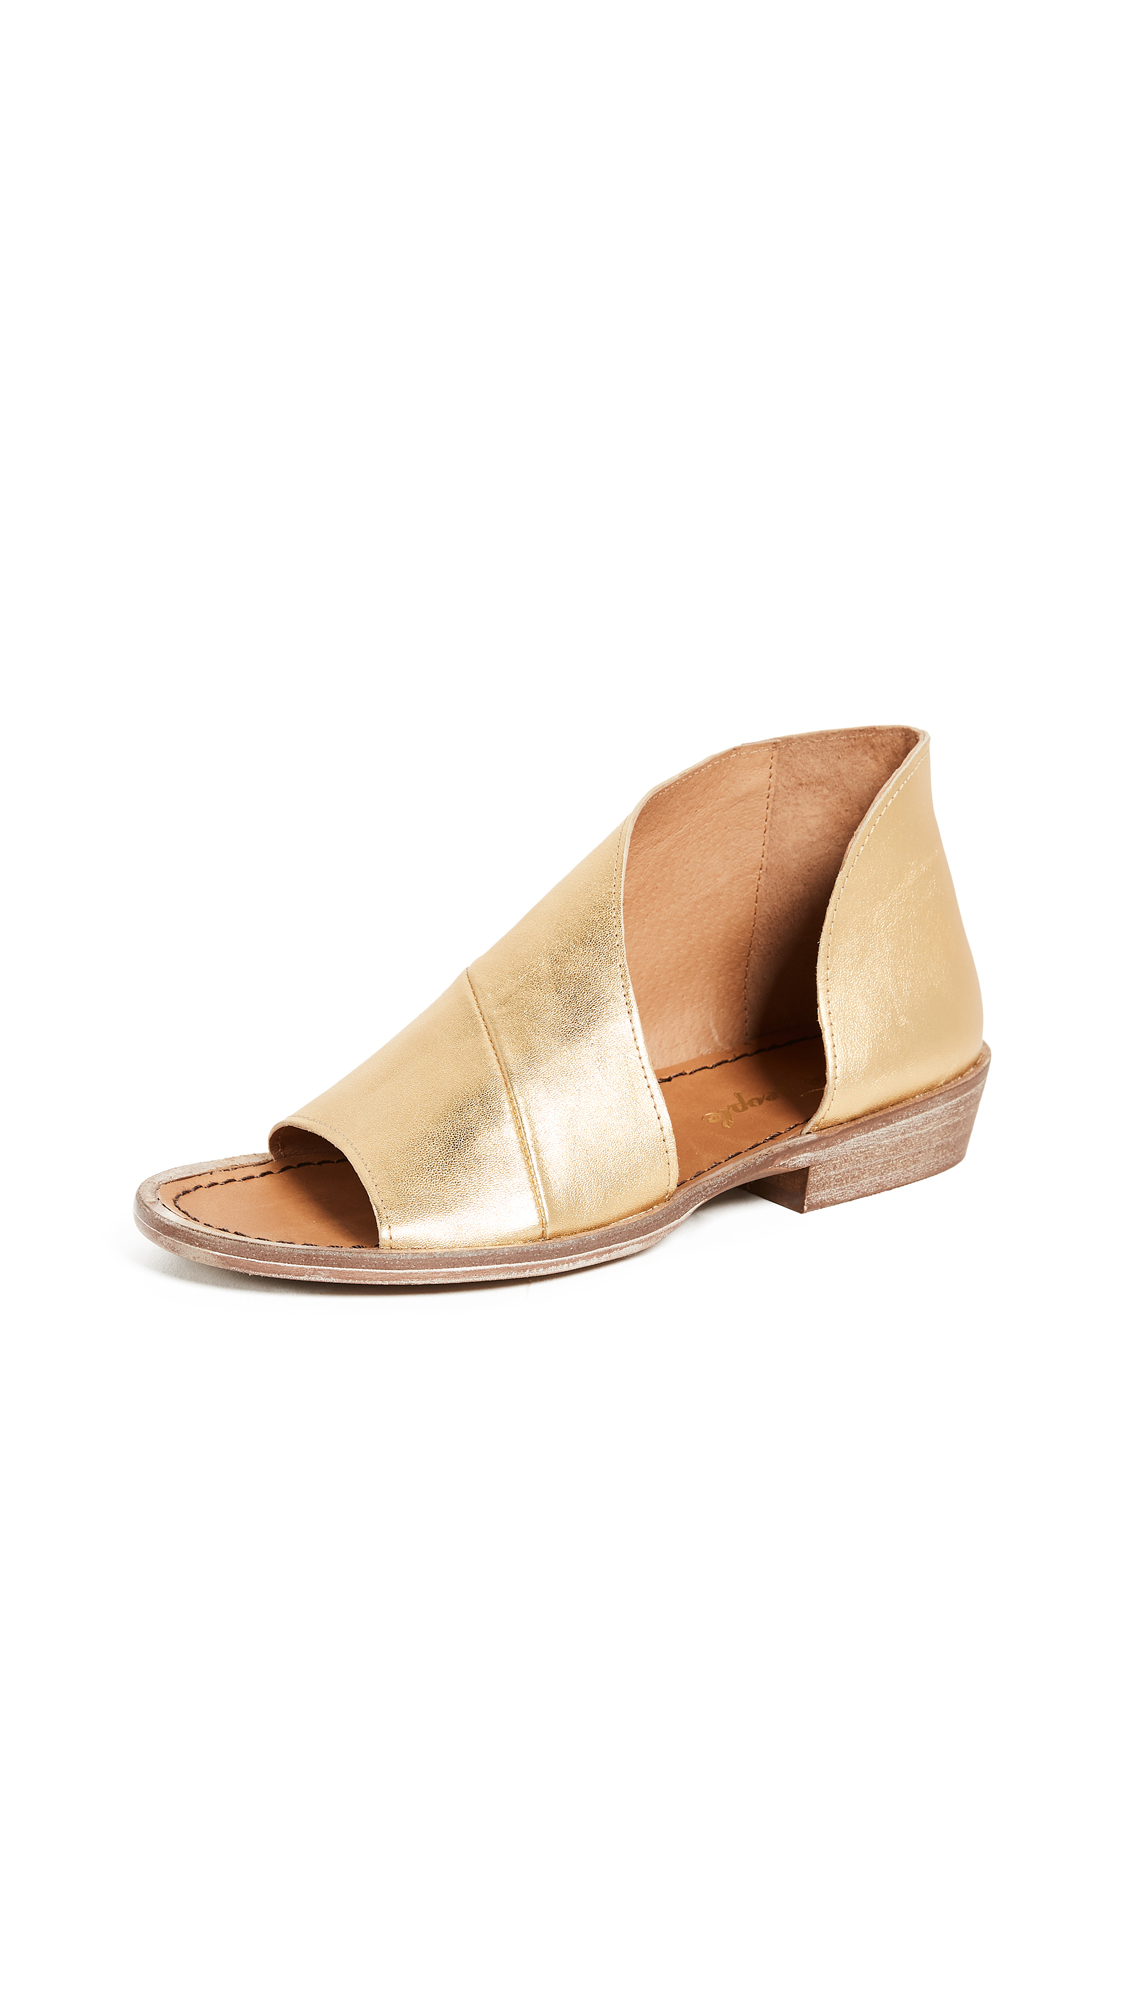 Free People Mont Blanc Sandals - Gold